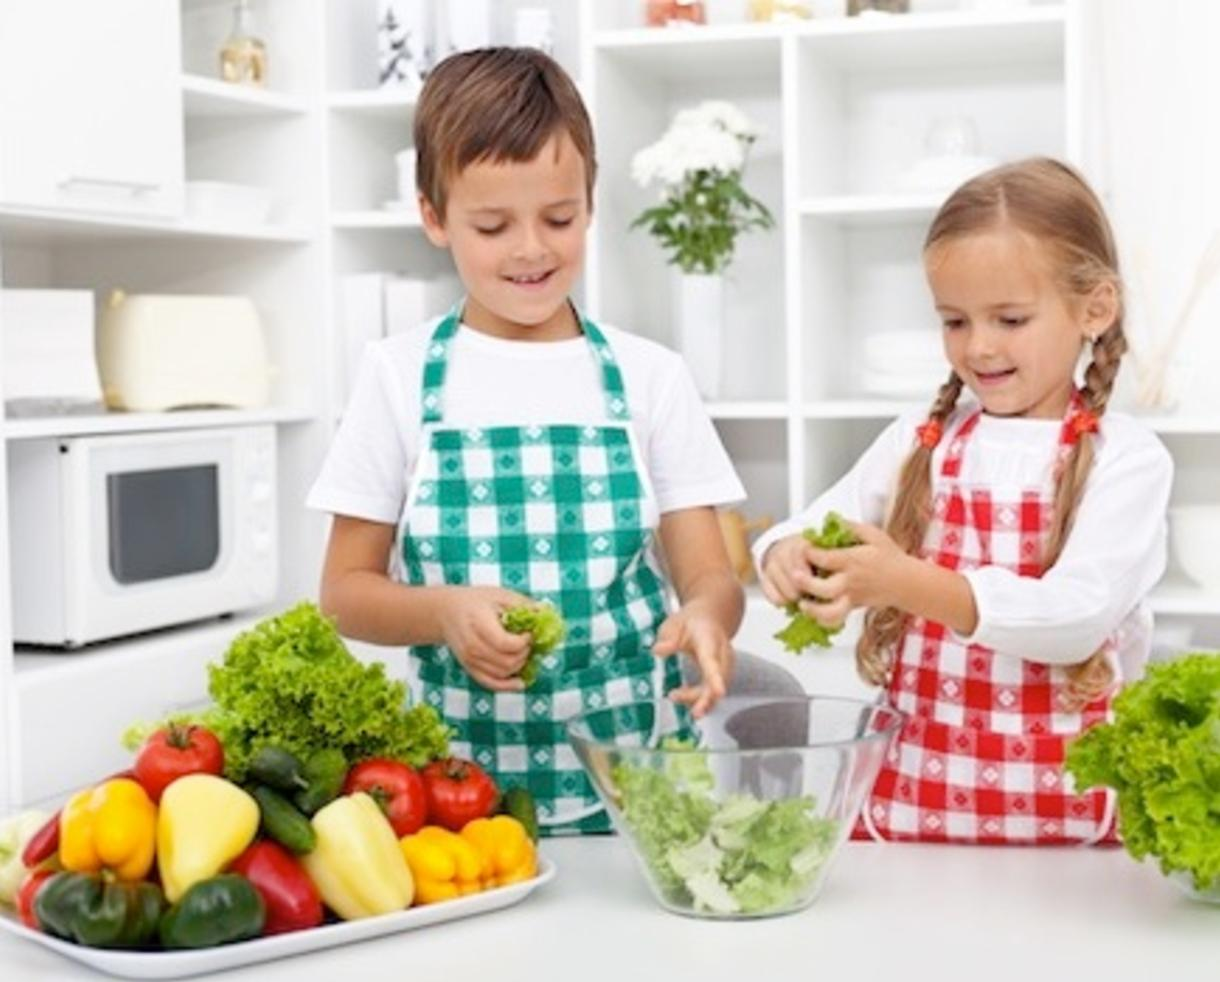 $99 for 4 Kids or Adult Cooking Classes at NEW Wholesome Campus in Chantilly (48% off of an up to $190 Value)